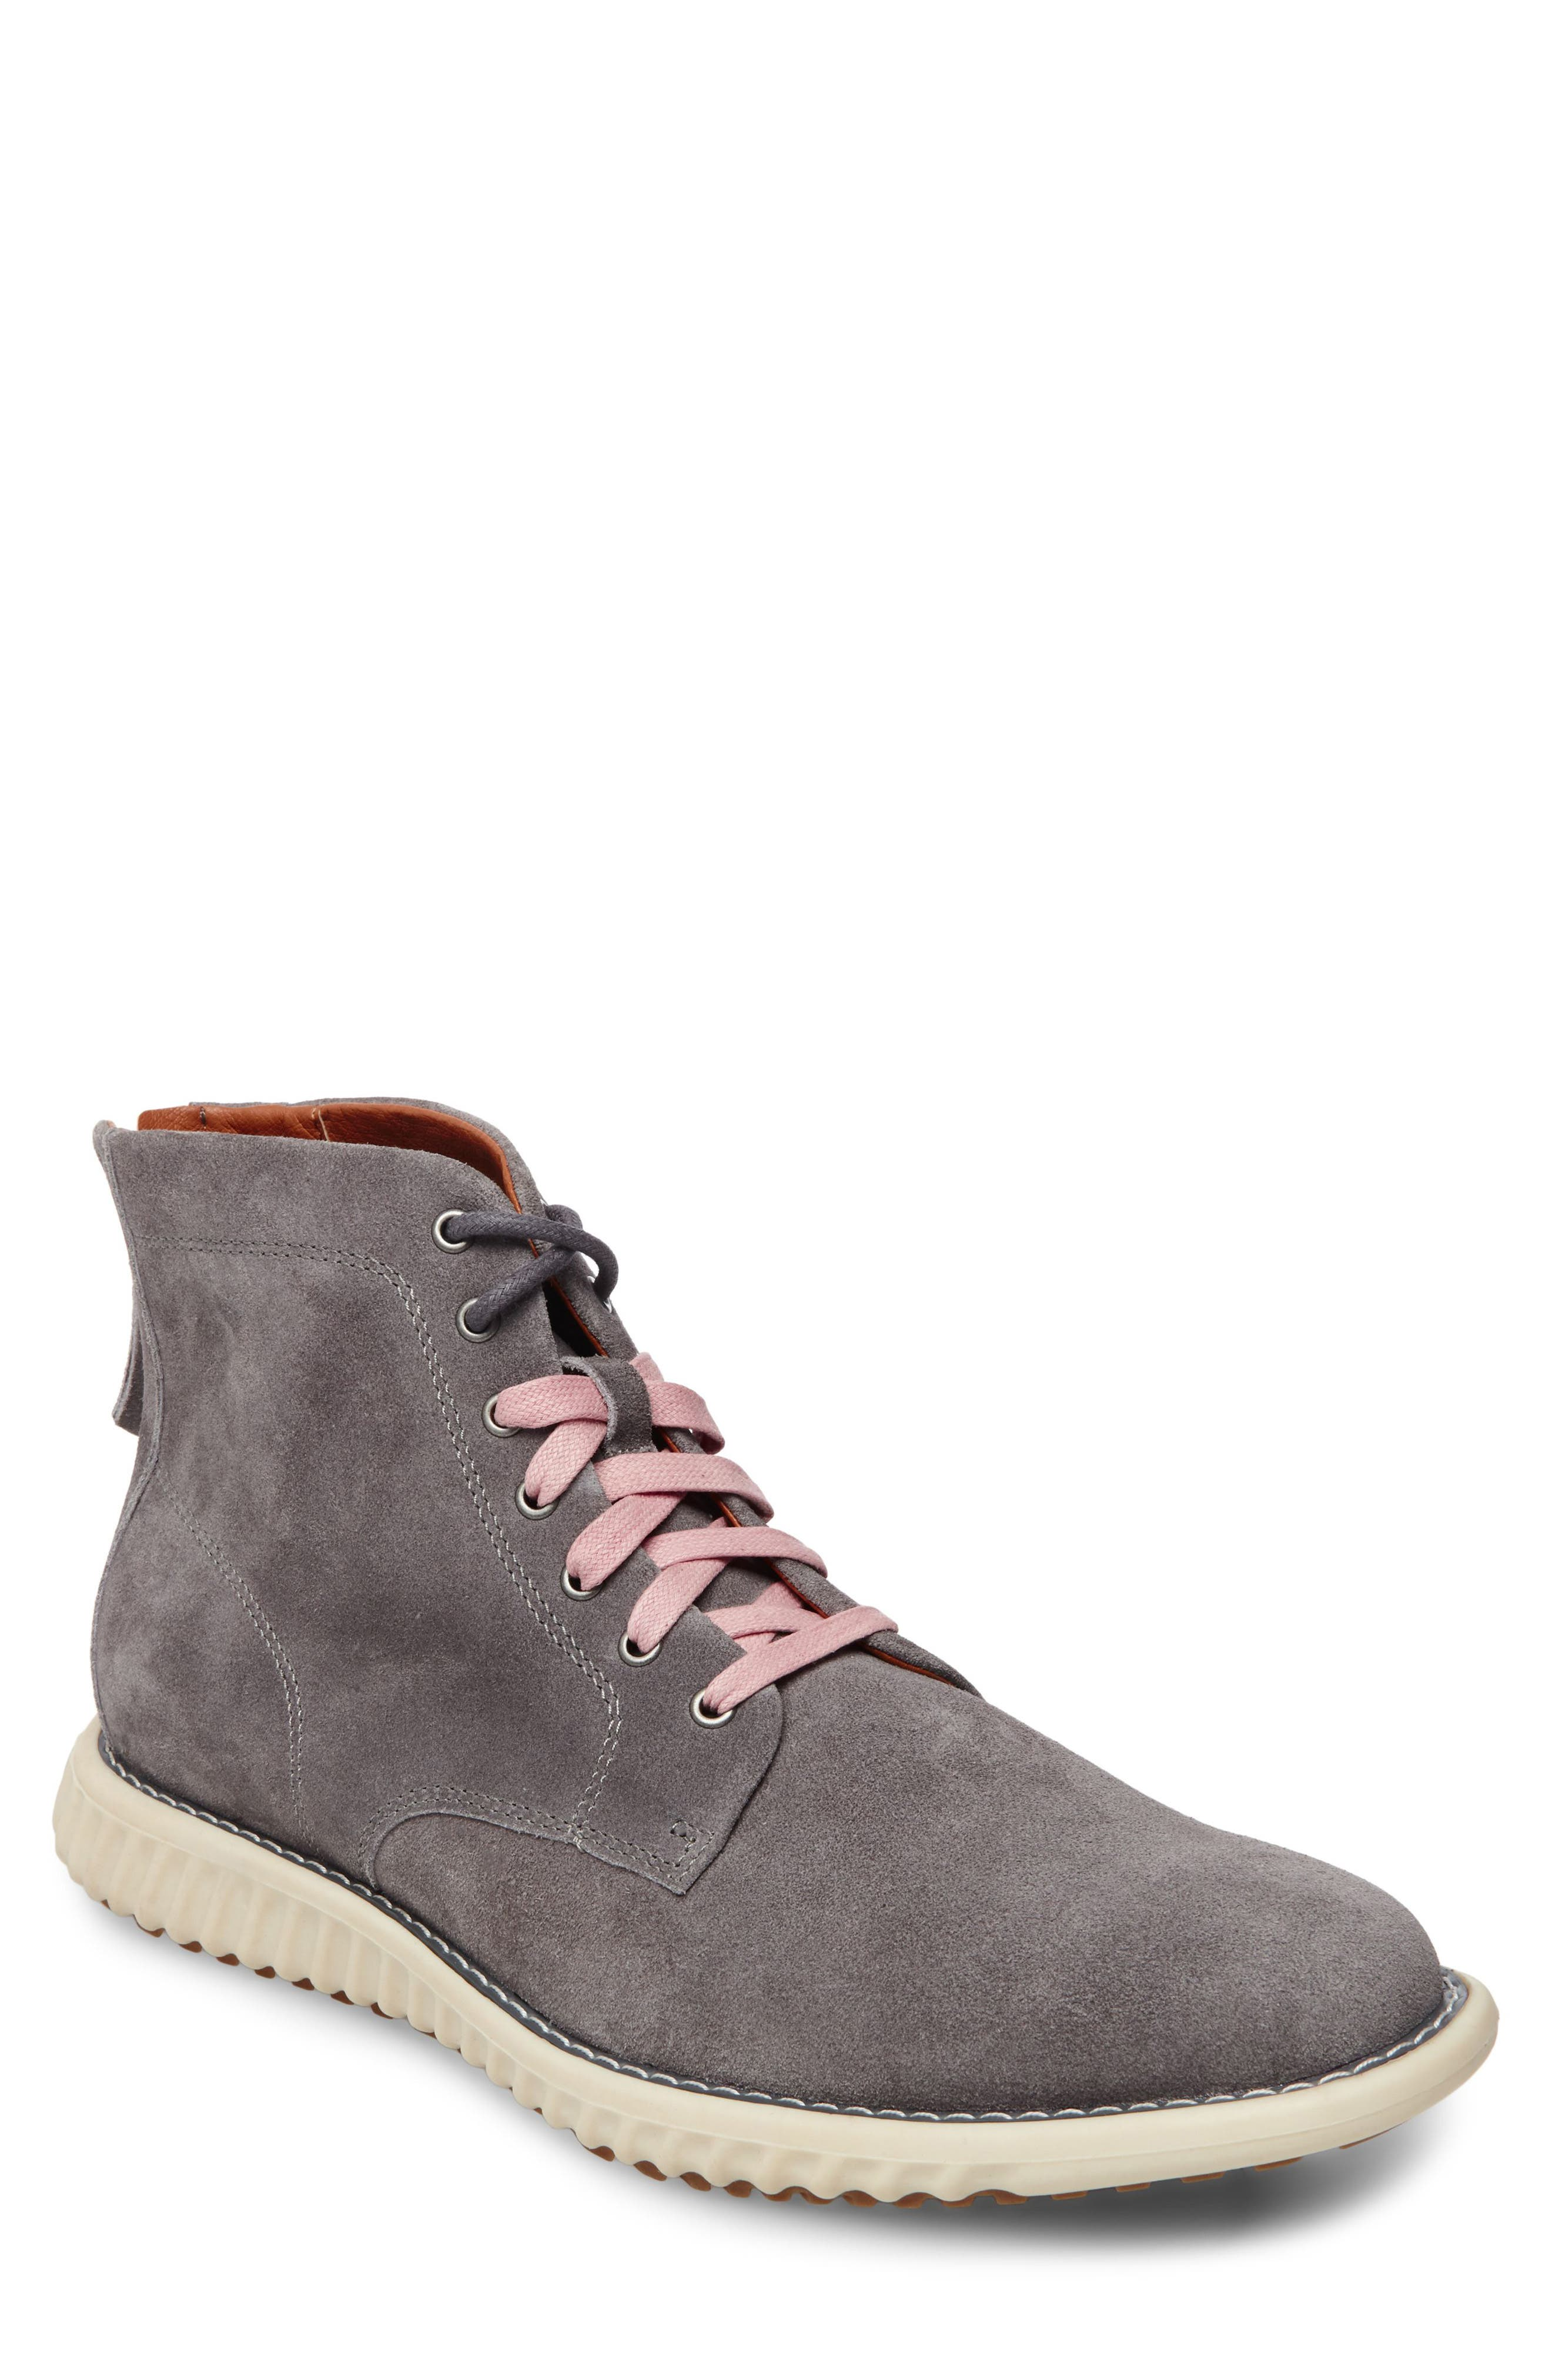 Verner Suede Plain Toe Boot,                         Main,                         color,